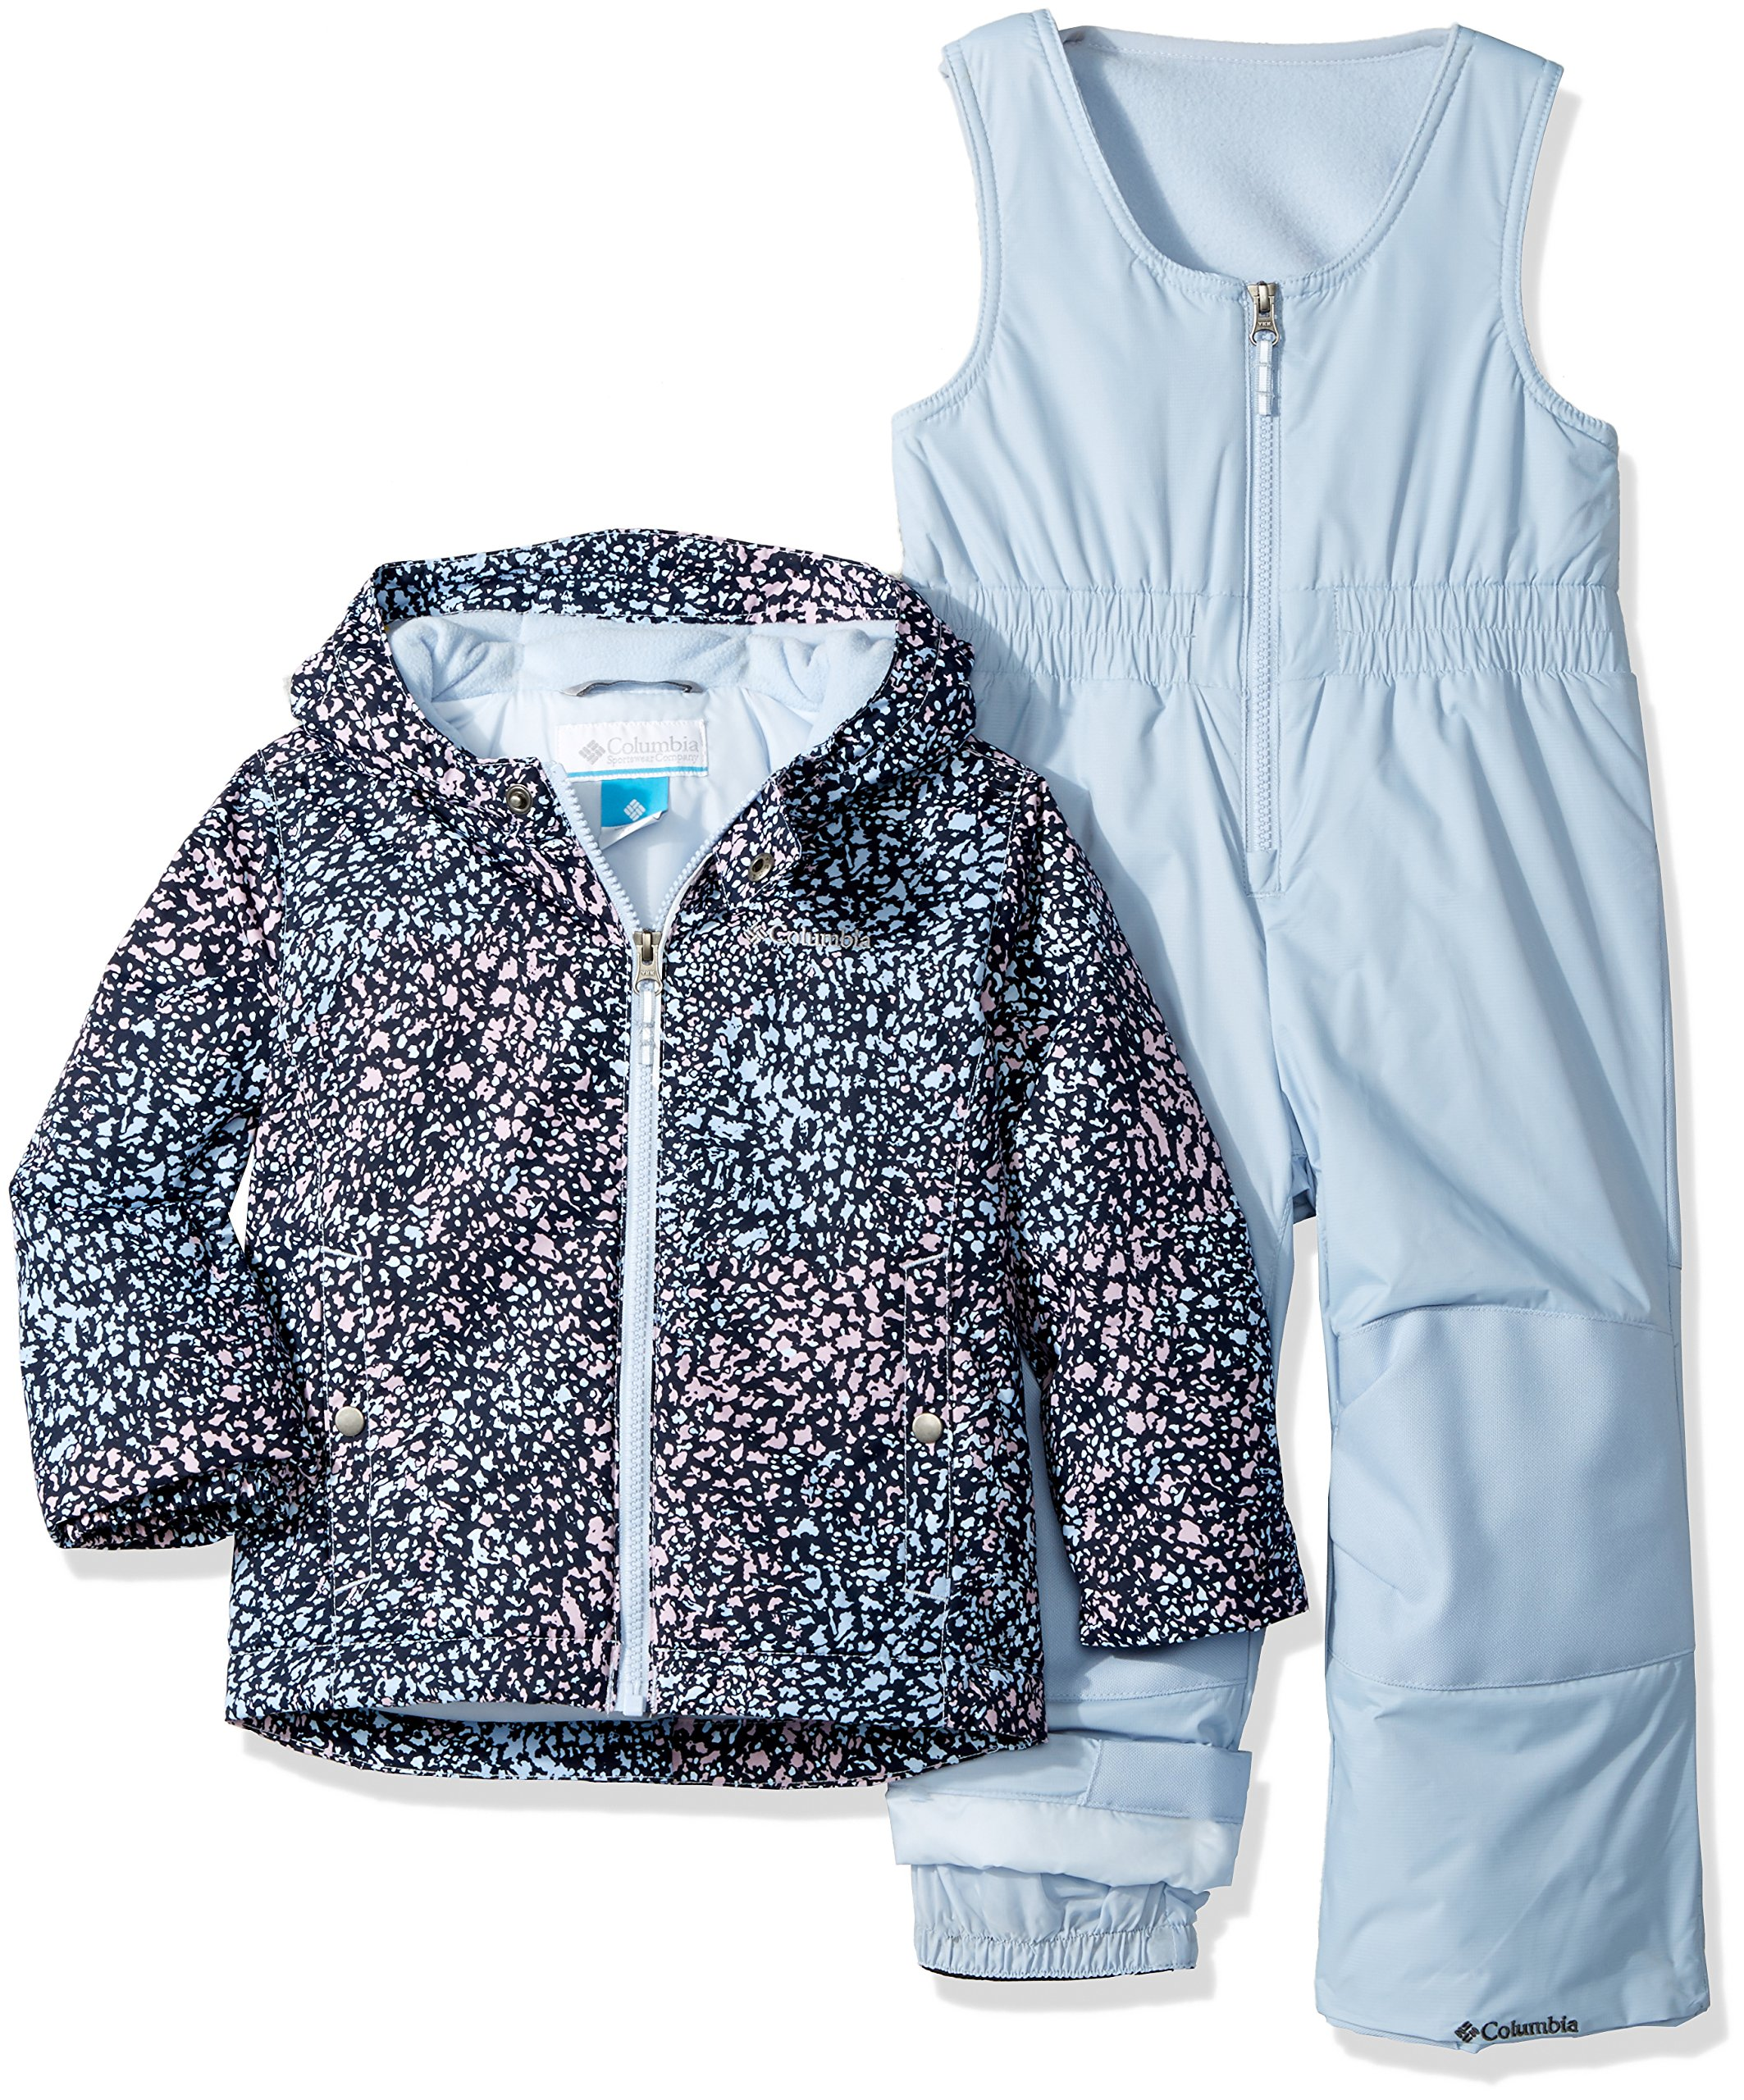 5d1985a7f Galleon - Columbia Girls' Toddler Frosty Slope Set, Faded Sky Snow  Splatter, 4T